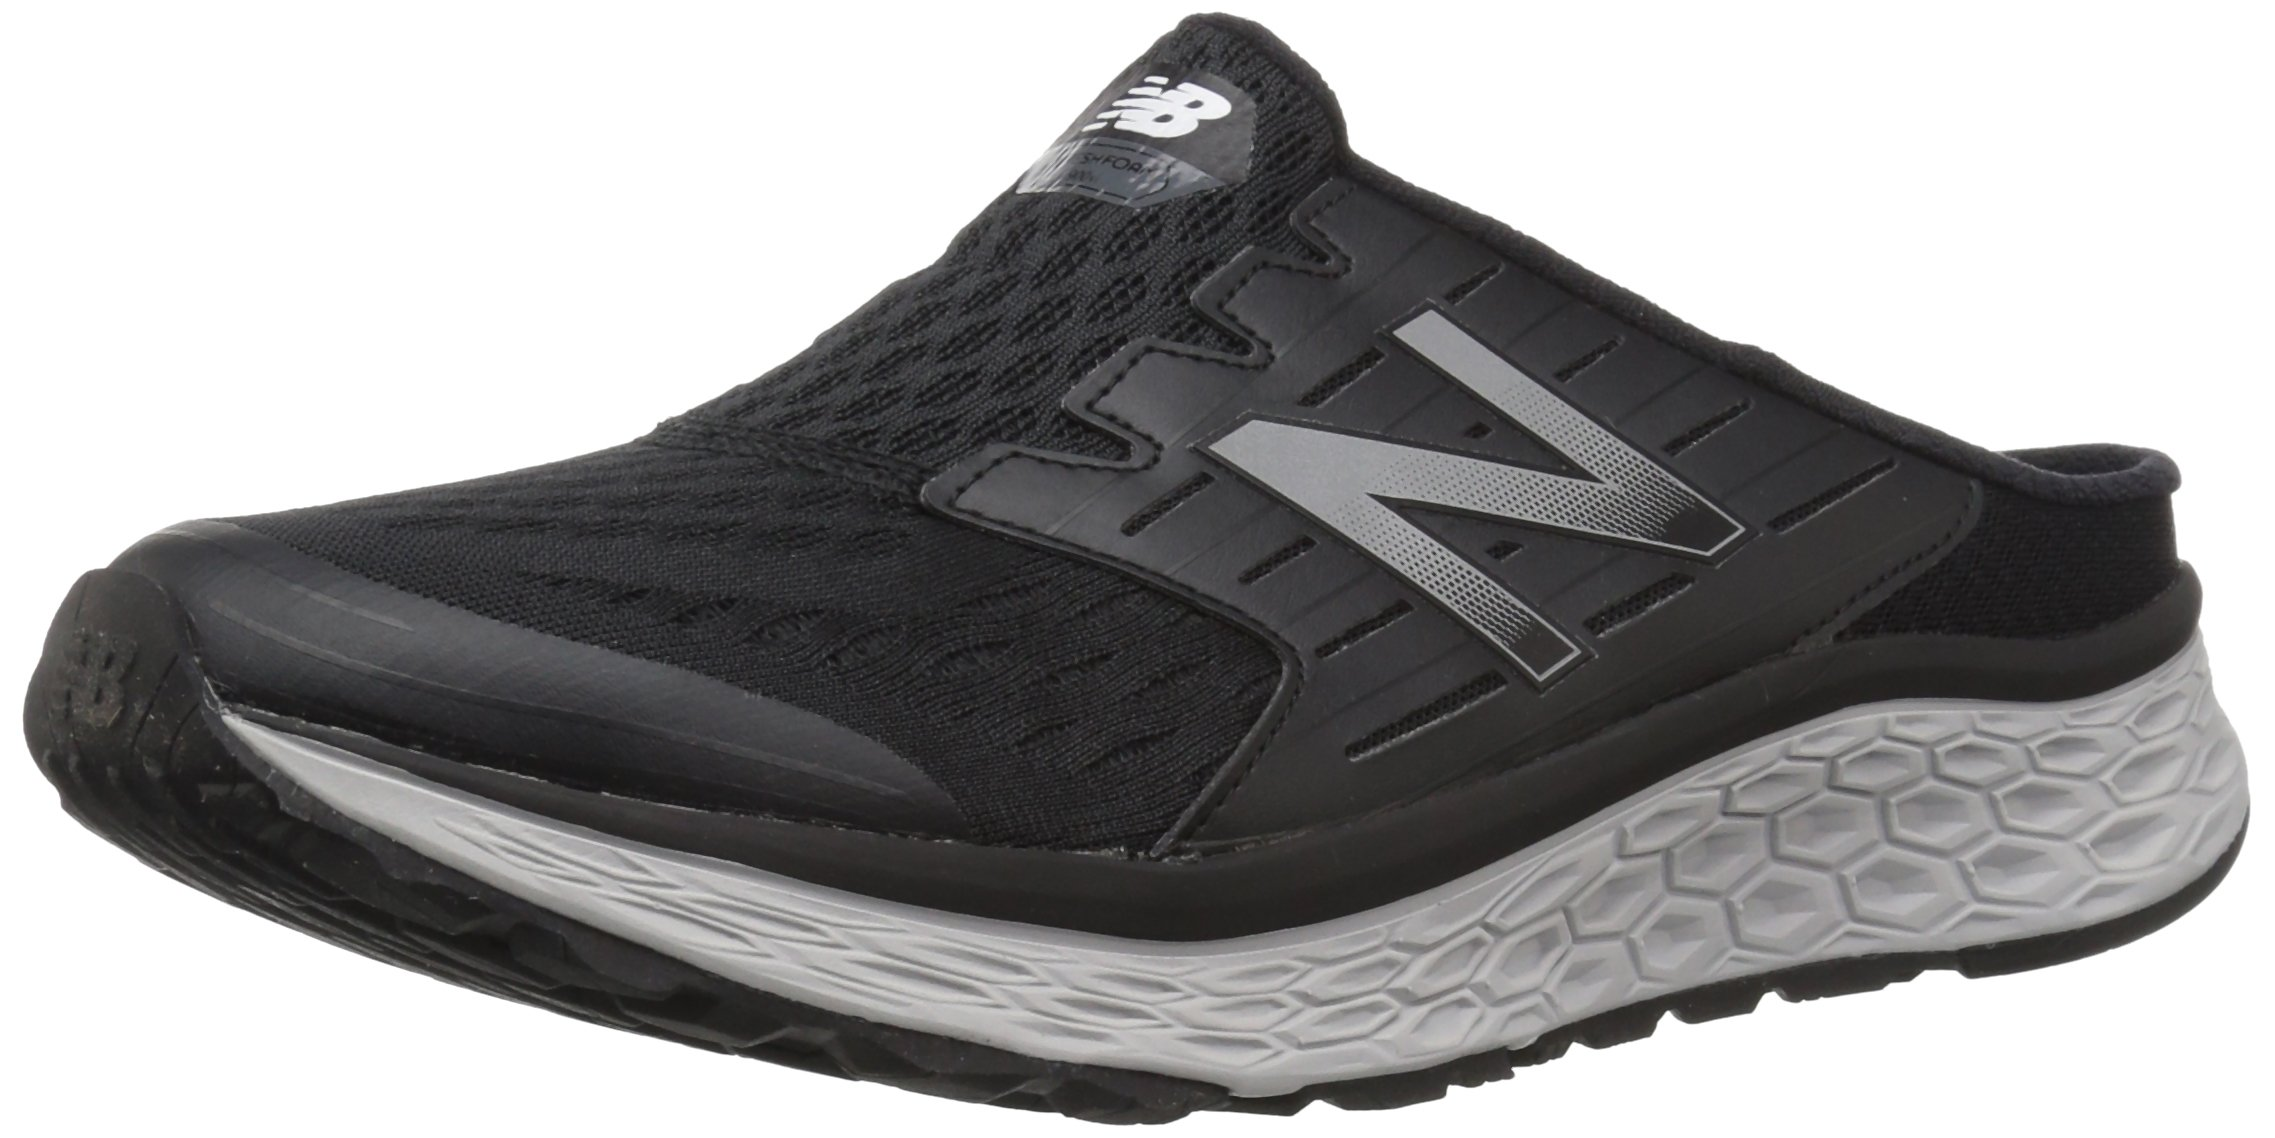 New Balance Men's 900v1 Fresh Foam Walking Shoe,black,10 D US by New Balance